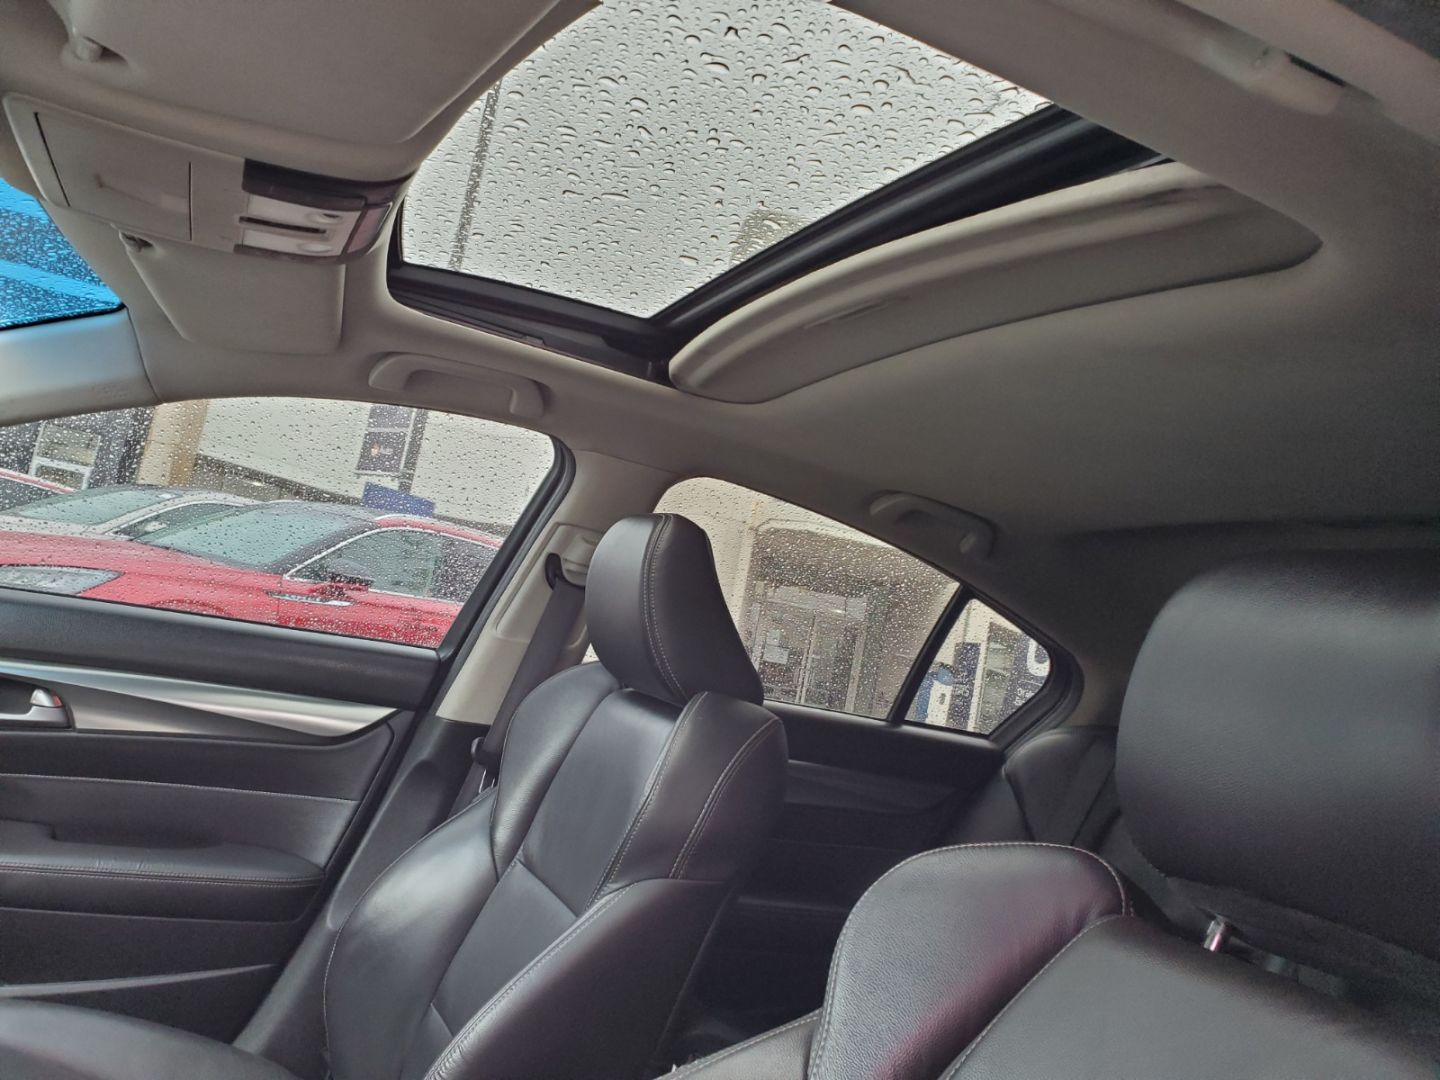 2010 Acura TL  for sale in Mississauga, Ontario